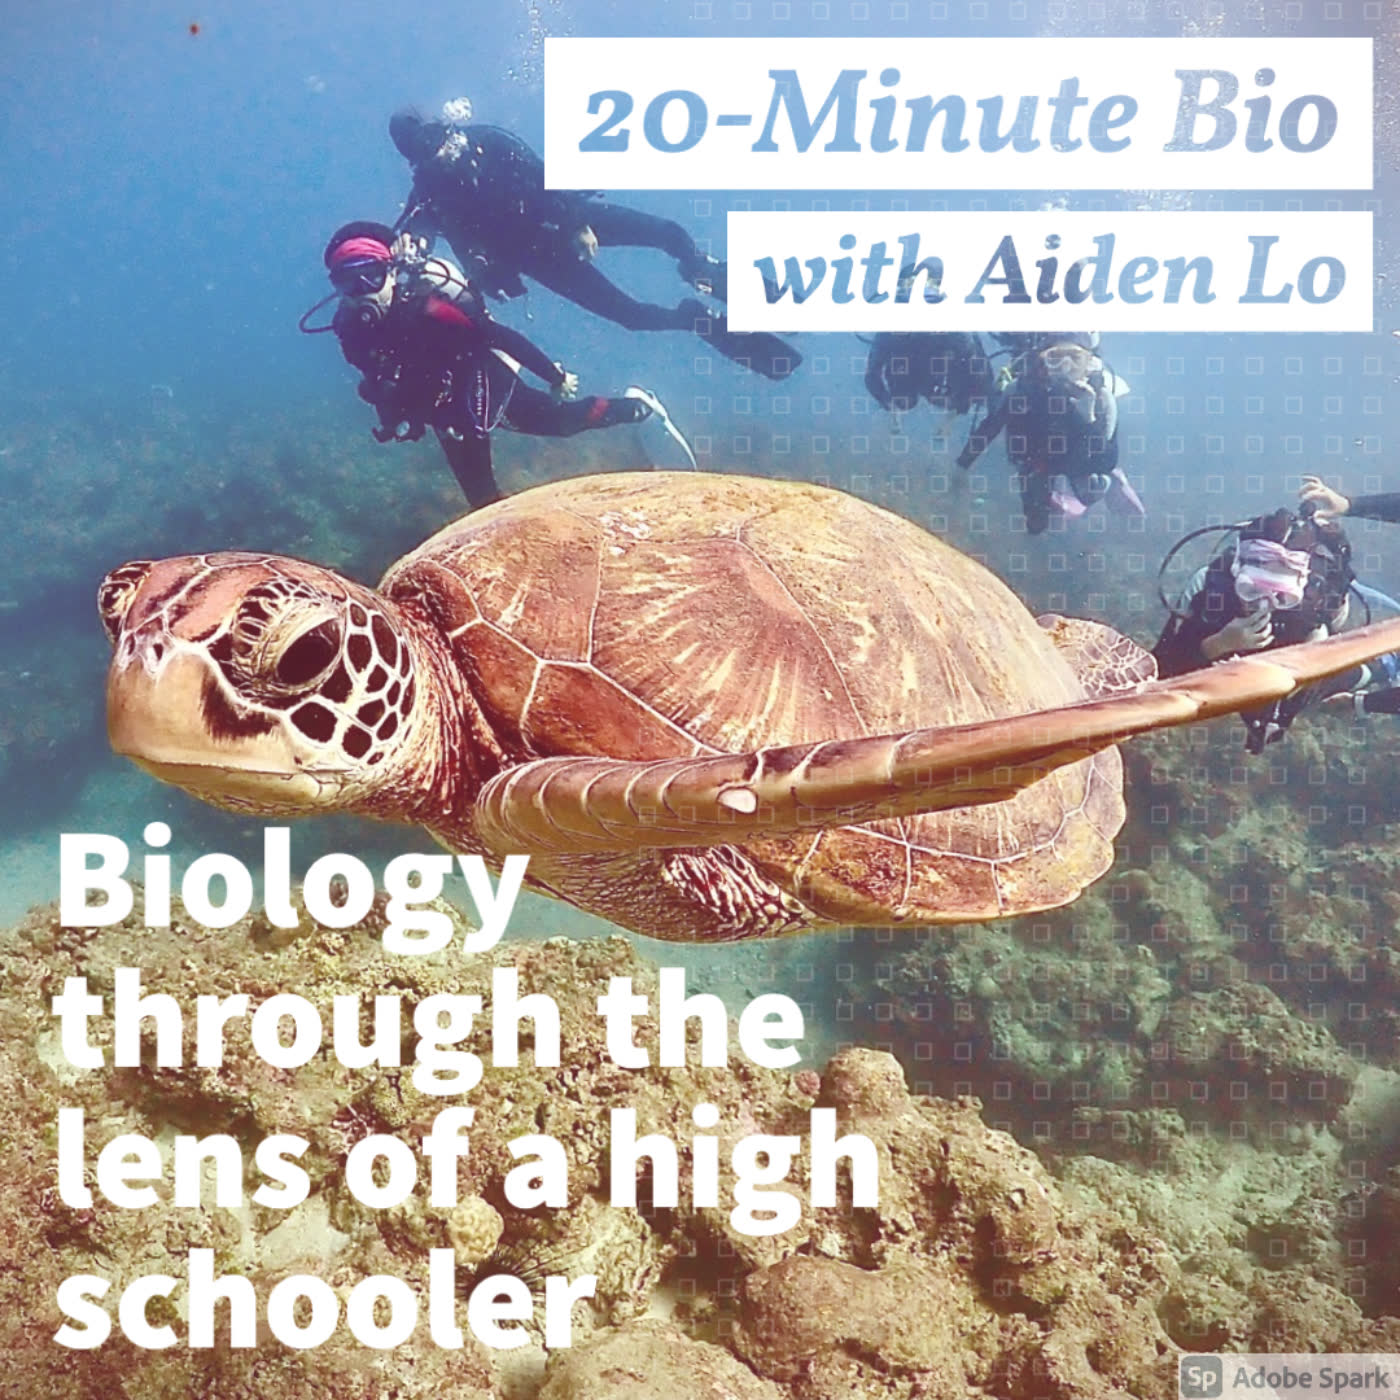 Uncovering Xiaoliuqiu: Sea Turtles, Scuba Diving, the Ocean [Part 1]